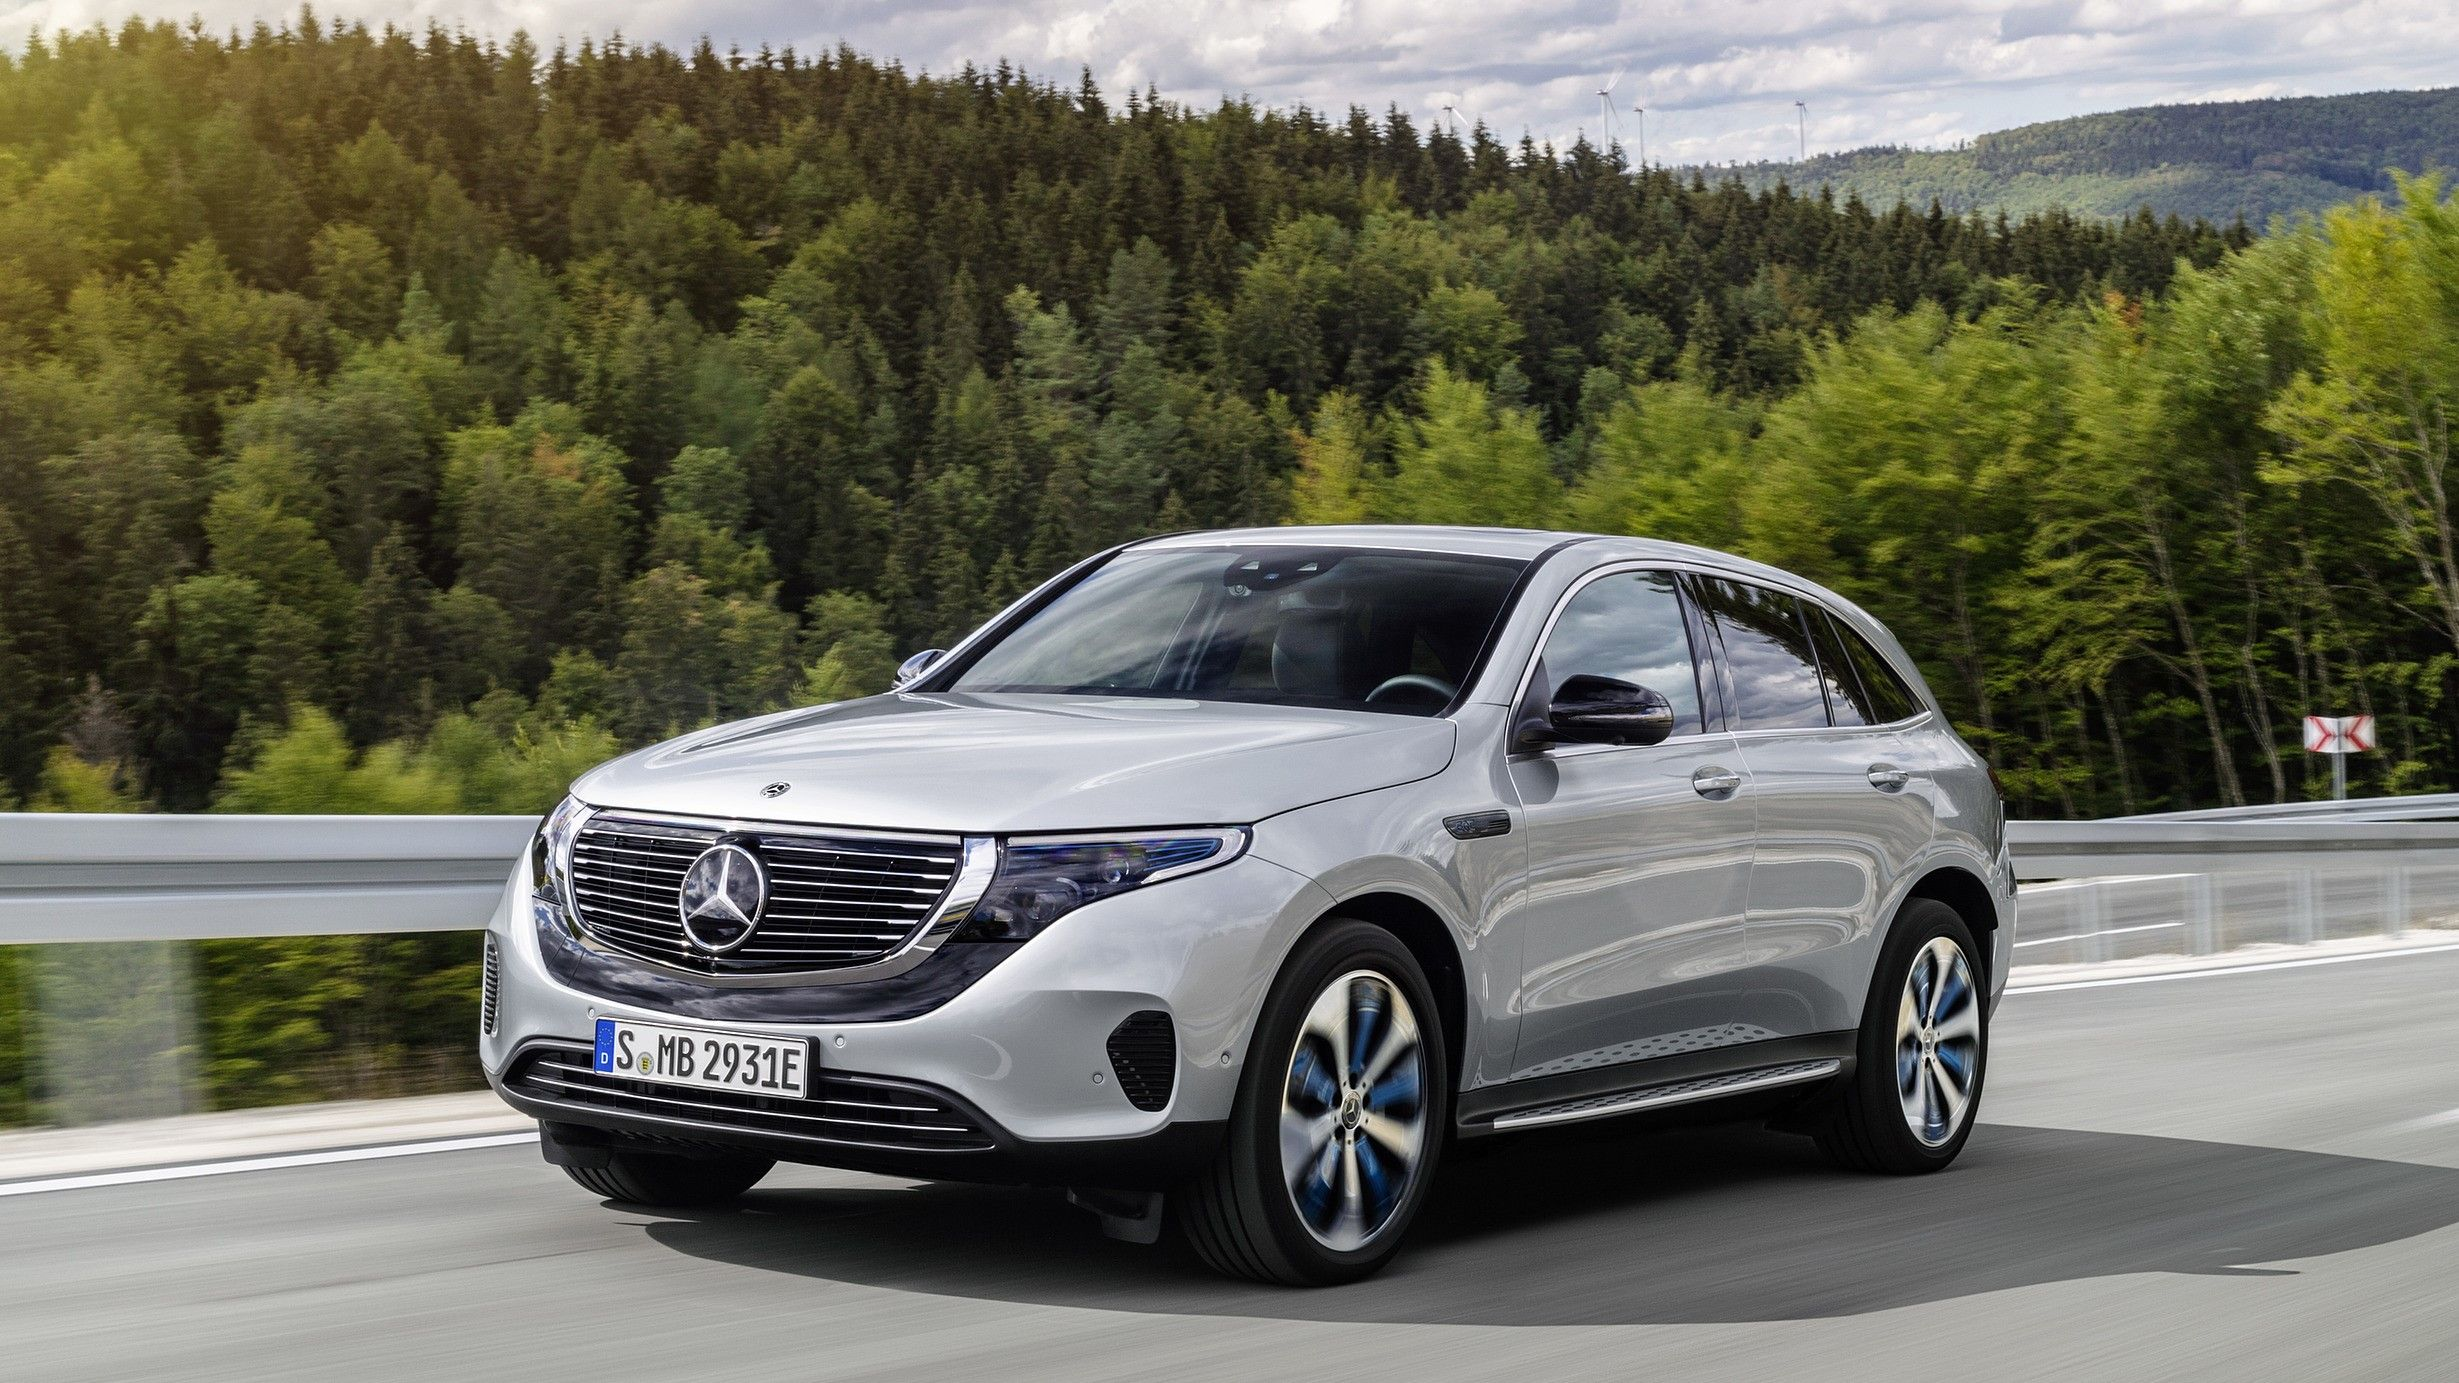 2021 mercedes Benz EQC fully electric SUV Review